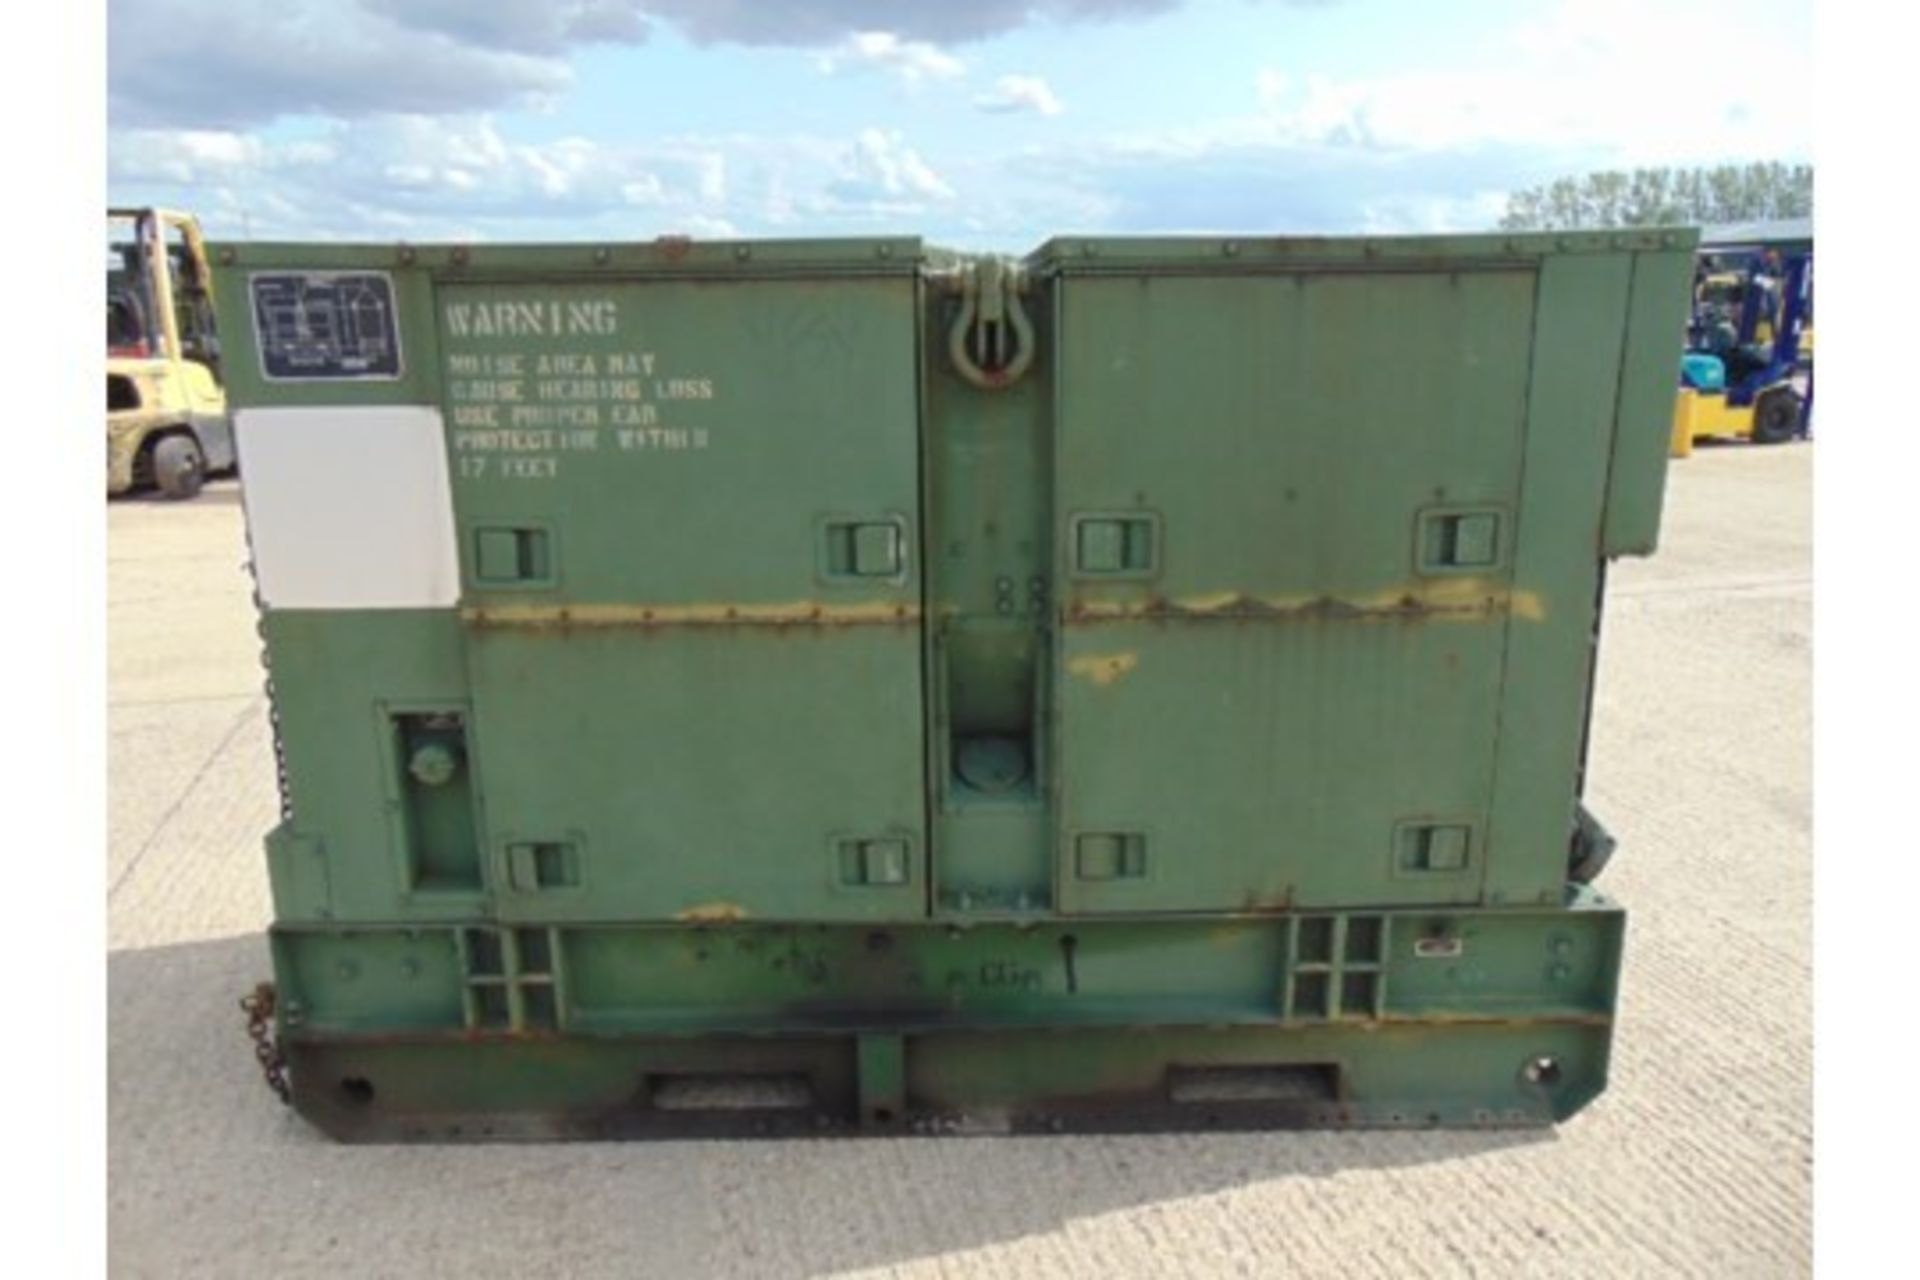 Lotto 26426 - Allis Chalmers MEP-006A 60kW Diesel Generator Set 821 hours only dual voltage